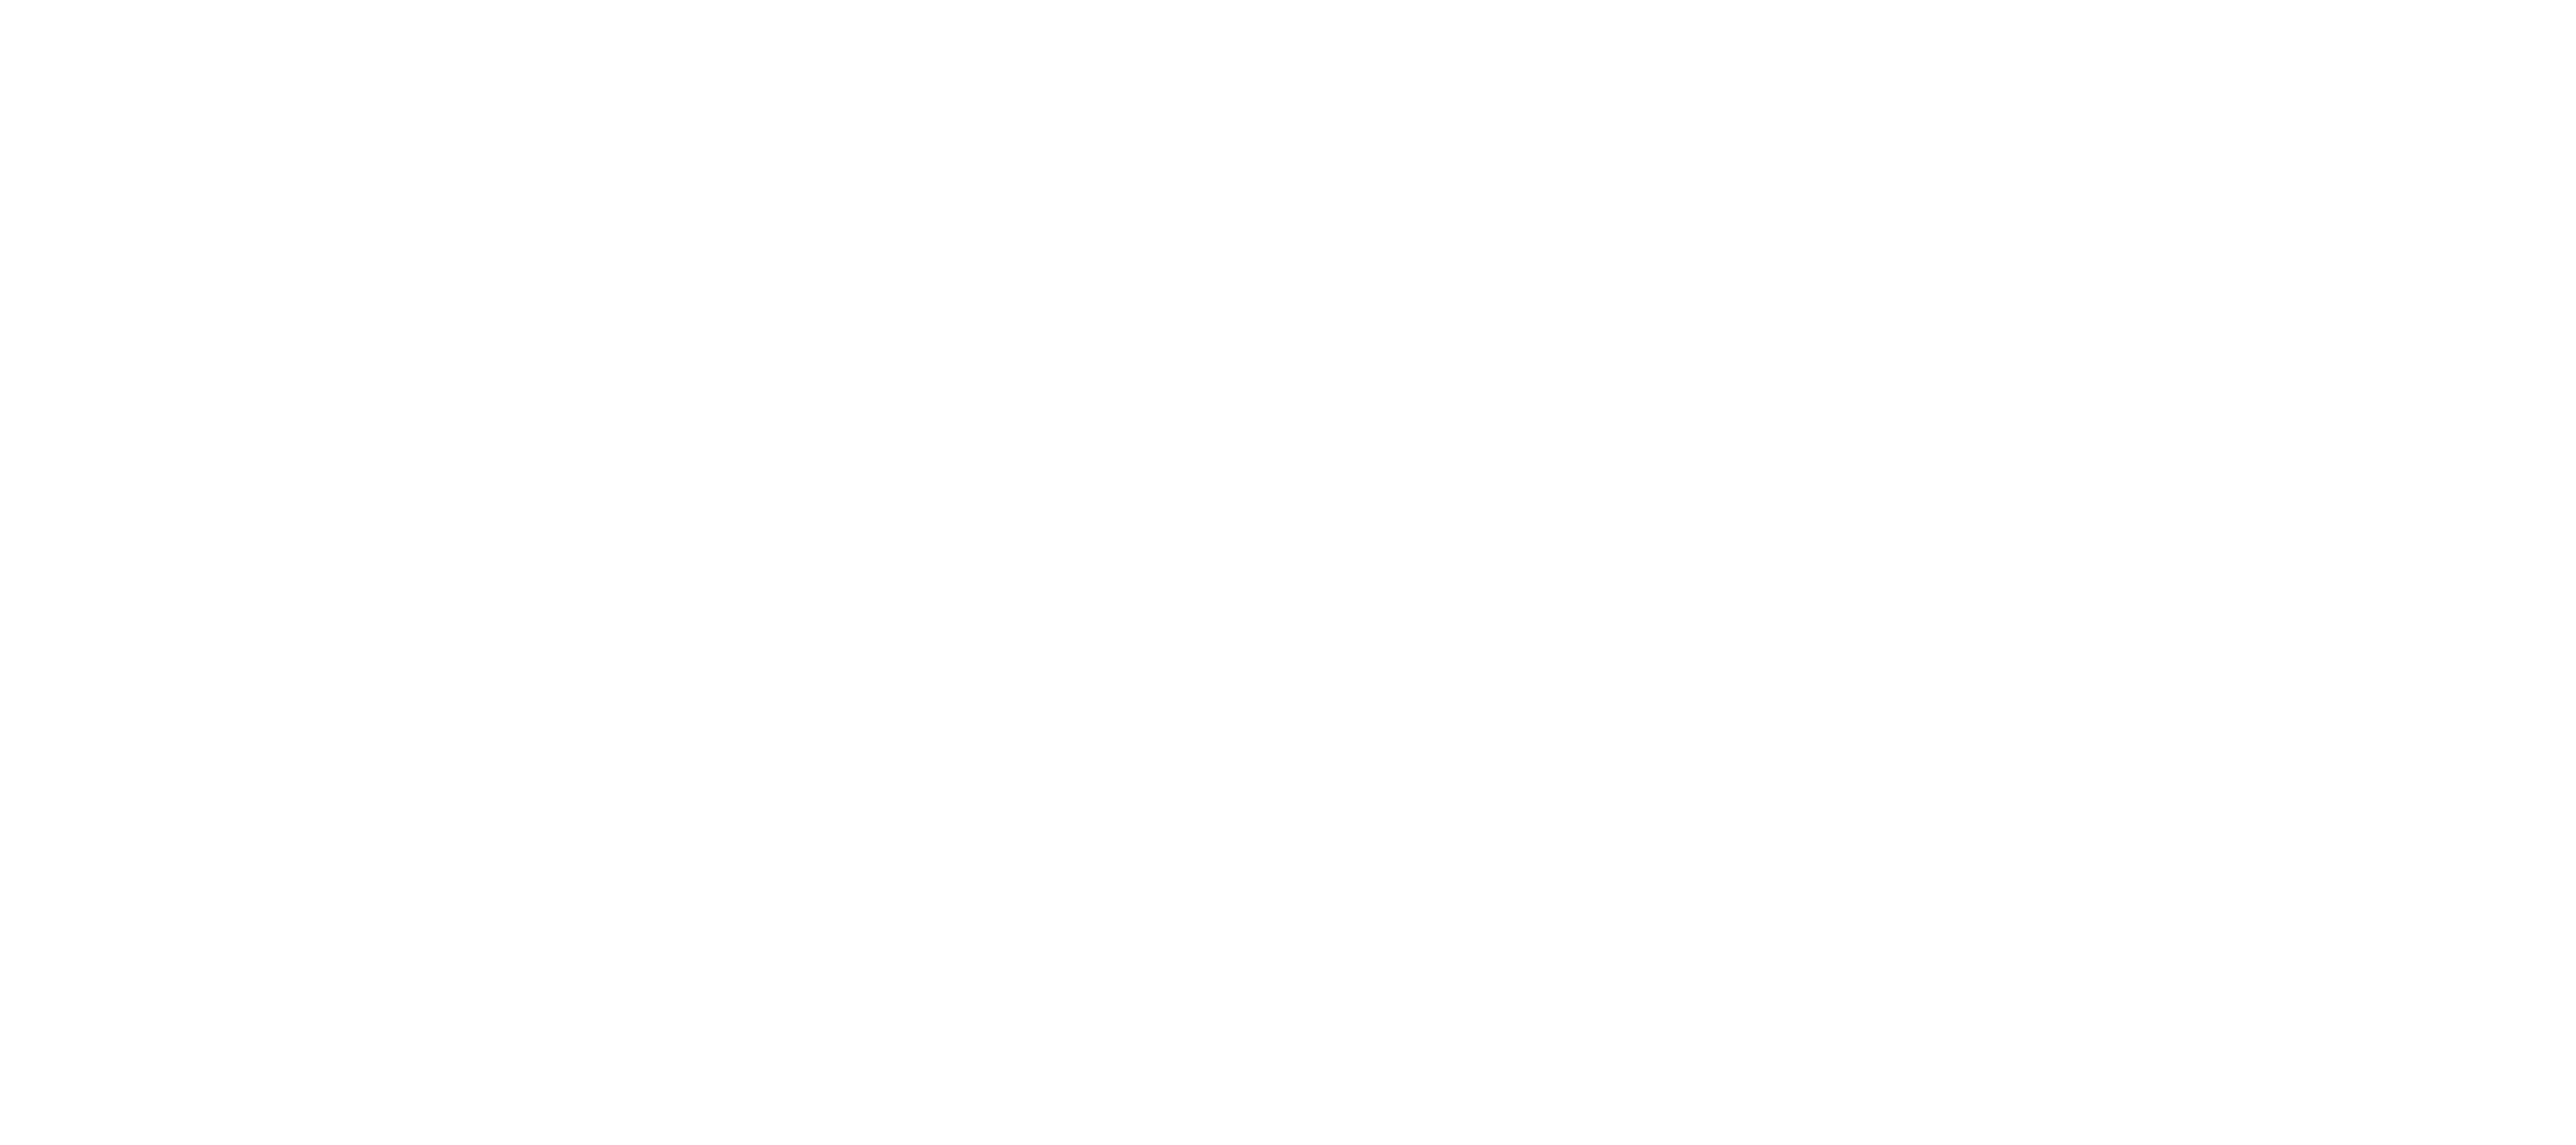 Welcome to Merge.Church